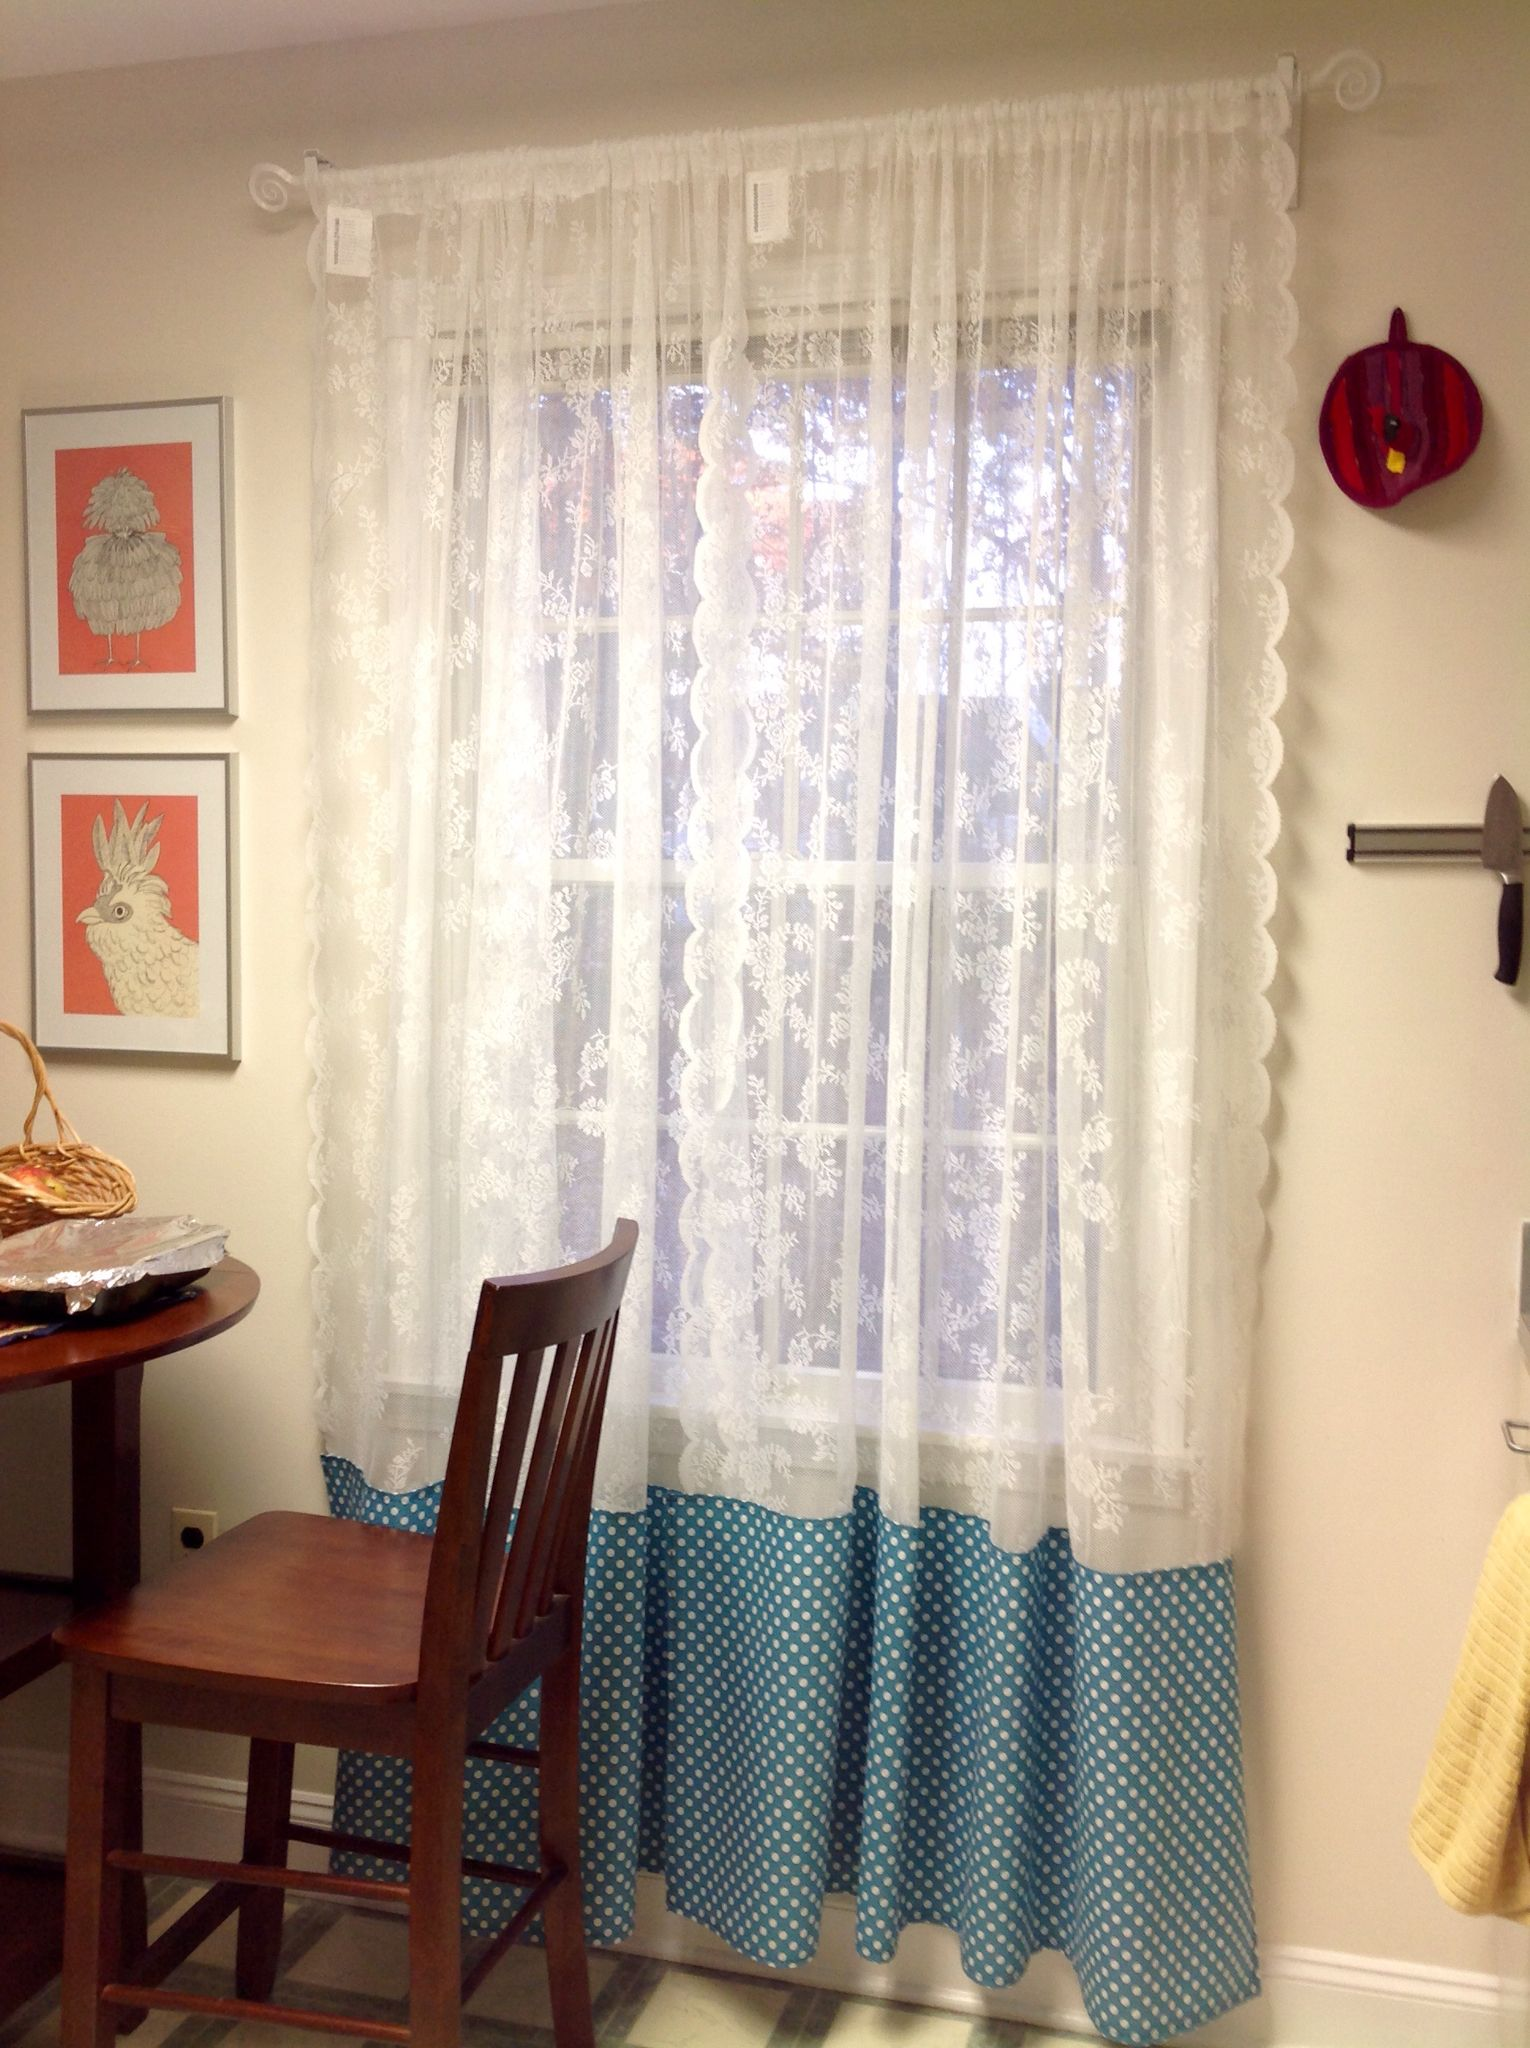 IKEA Hack DIY added cotton polka dot fabric to Ikea ALVINE SPETS Curtains They